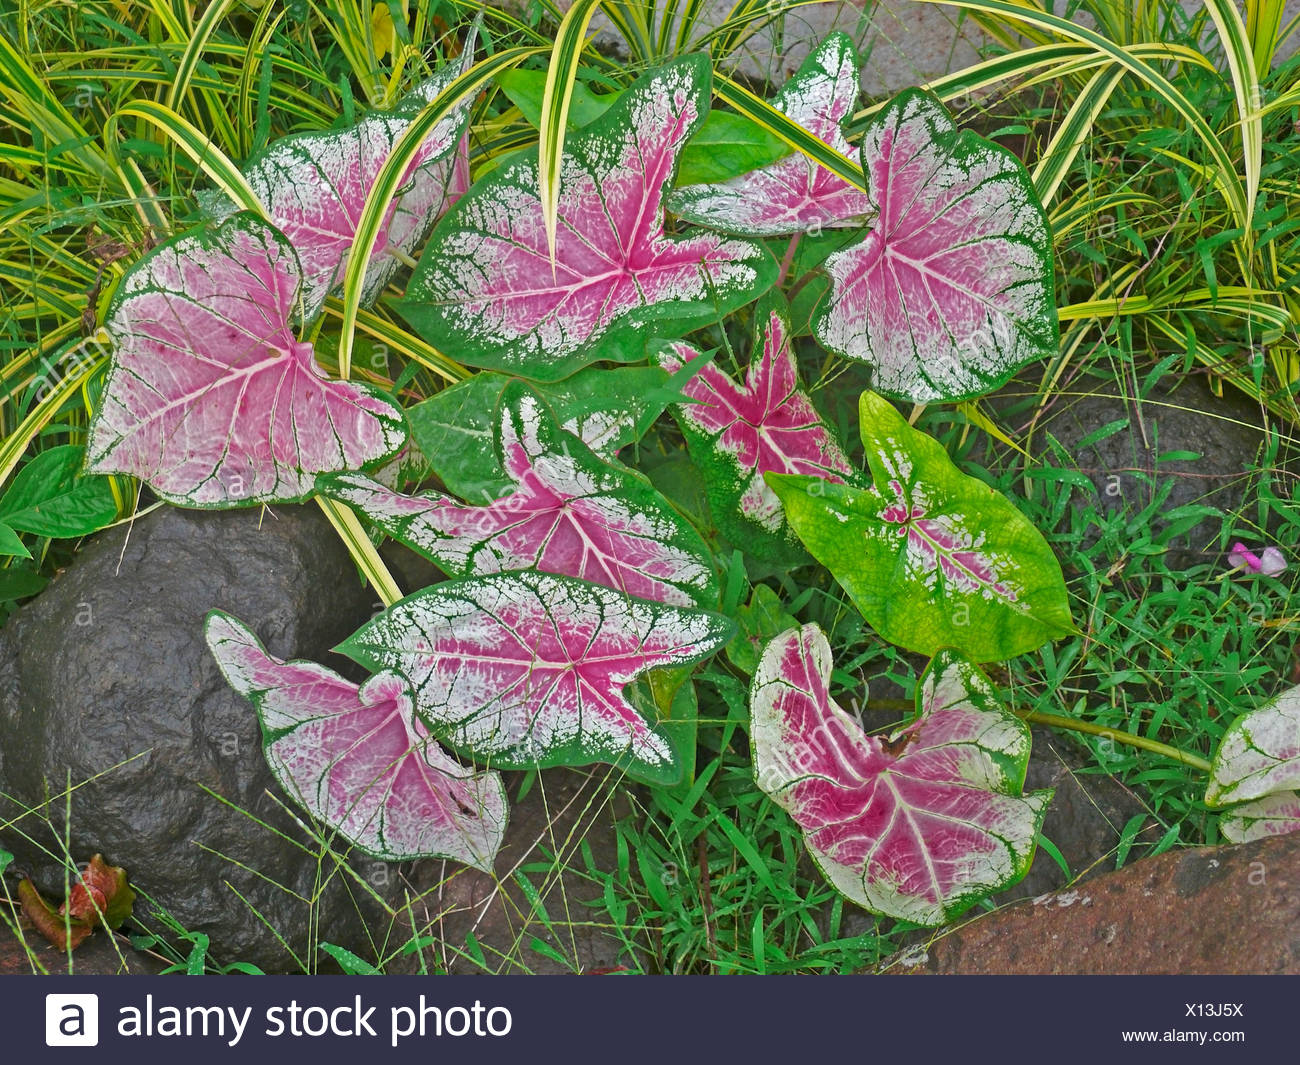 Fancy-Leaved Caladium, Caladium bicolor - Stock Image